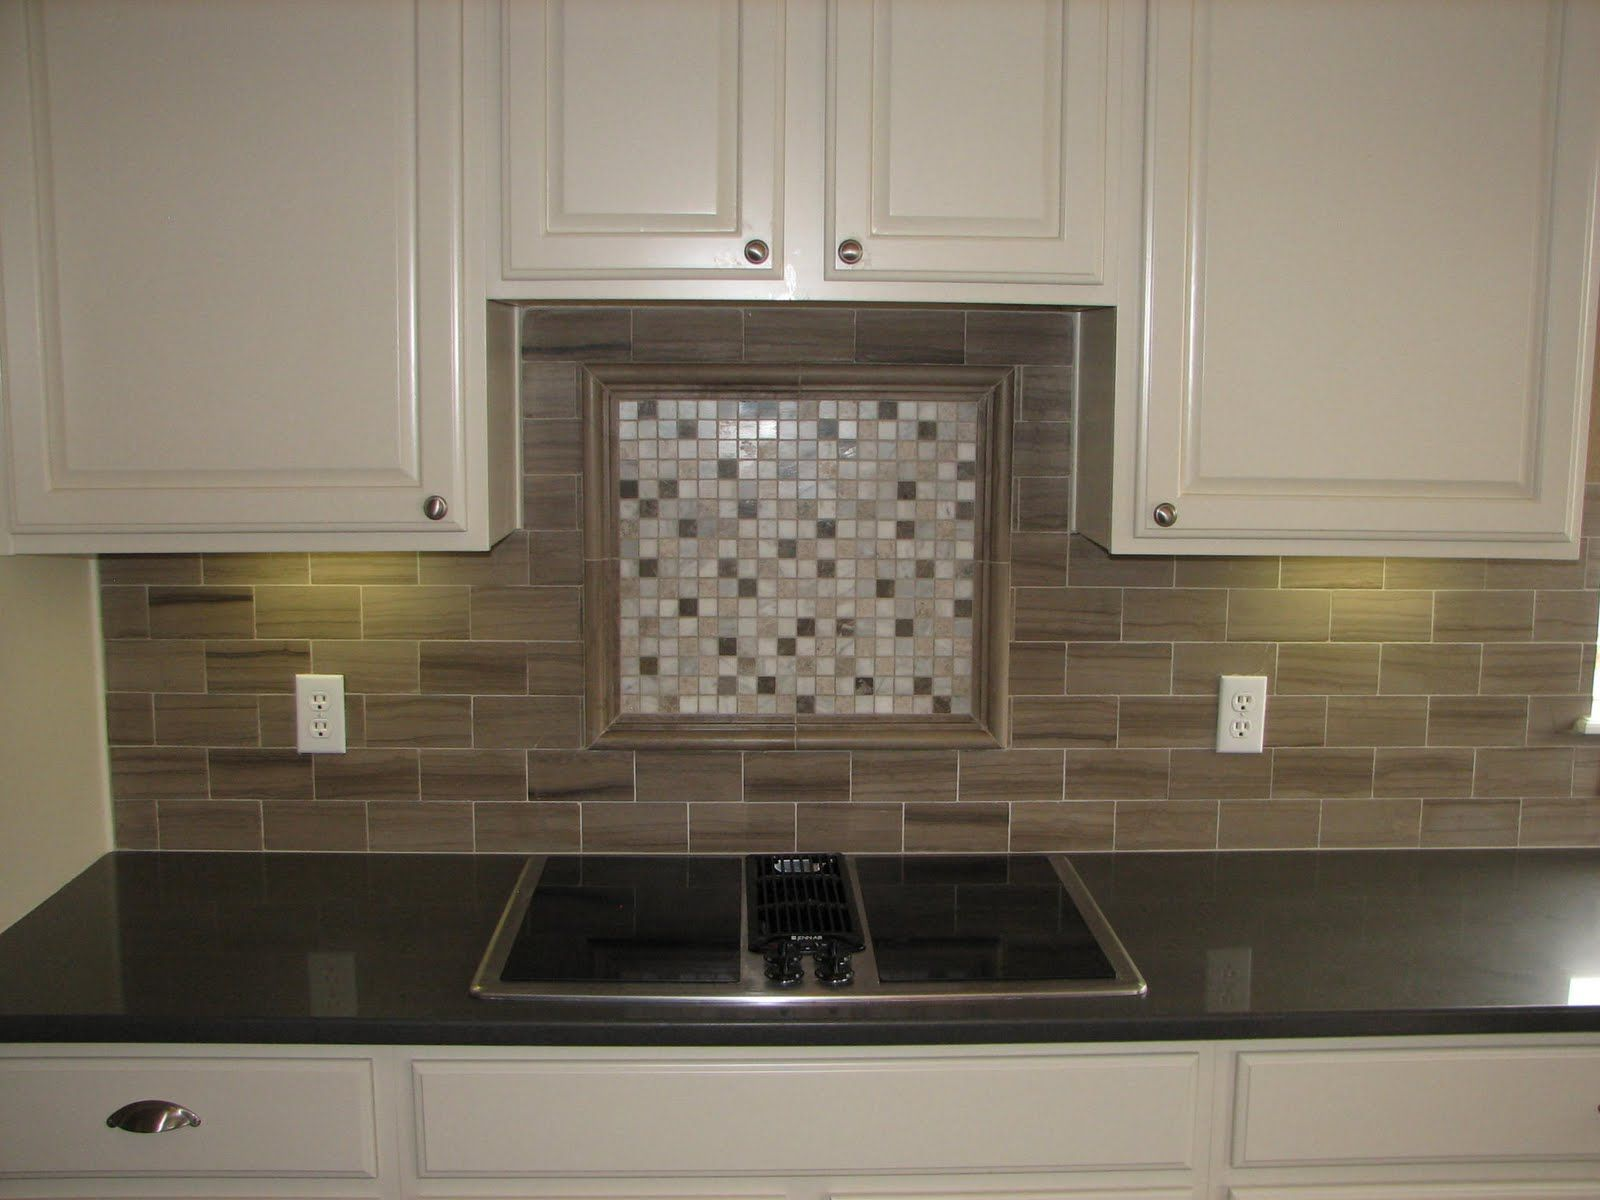 Tile backsplash with black cuntertop ideas tile Backslash ideas